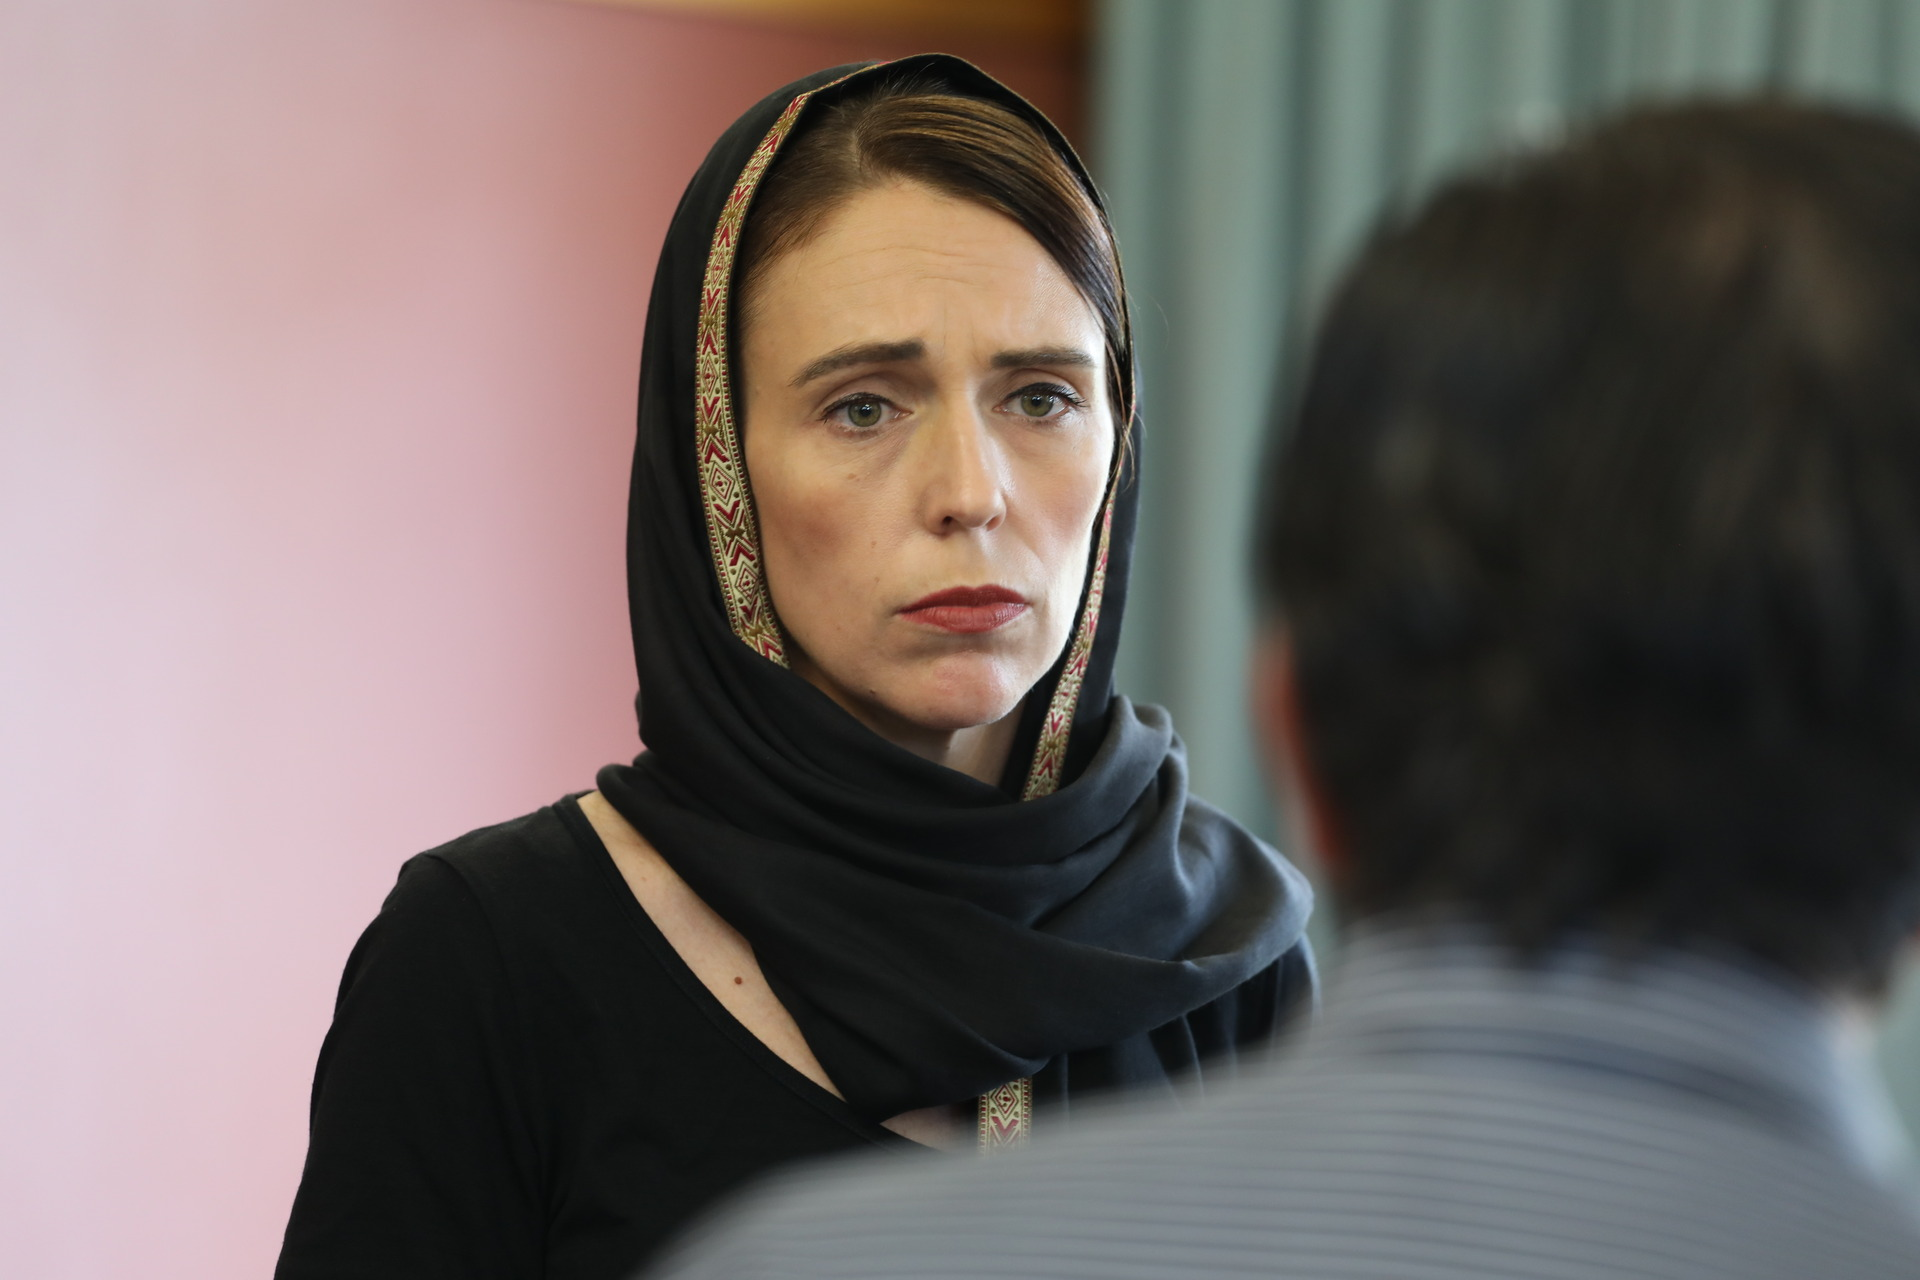 The Front Page podcast: Semi-automatic guns and assault rifles banned in NZ, less than a week after tragedy